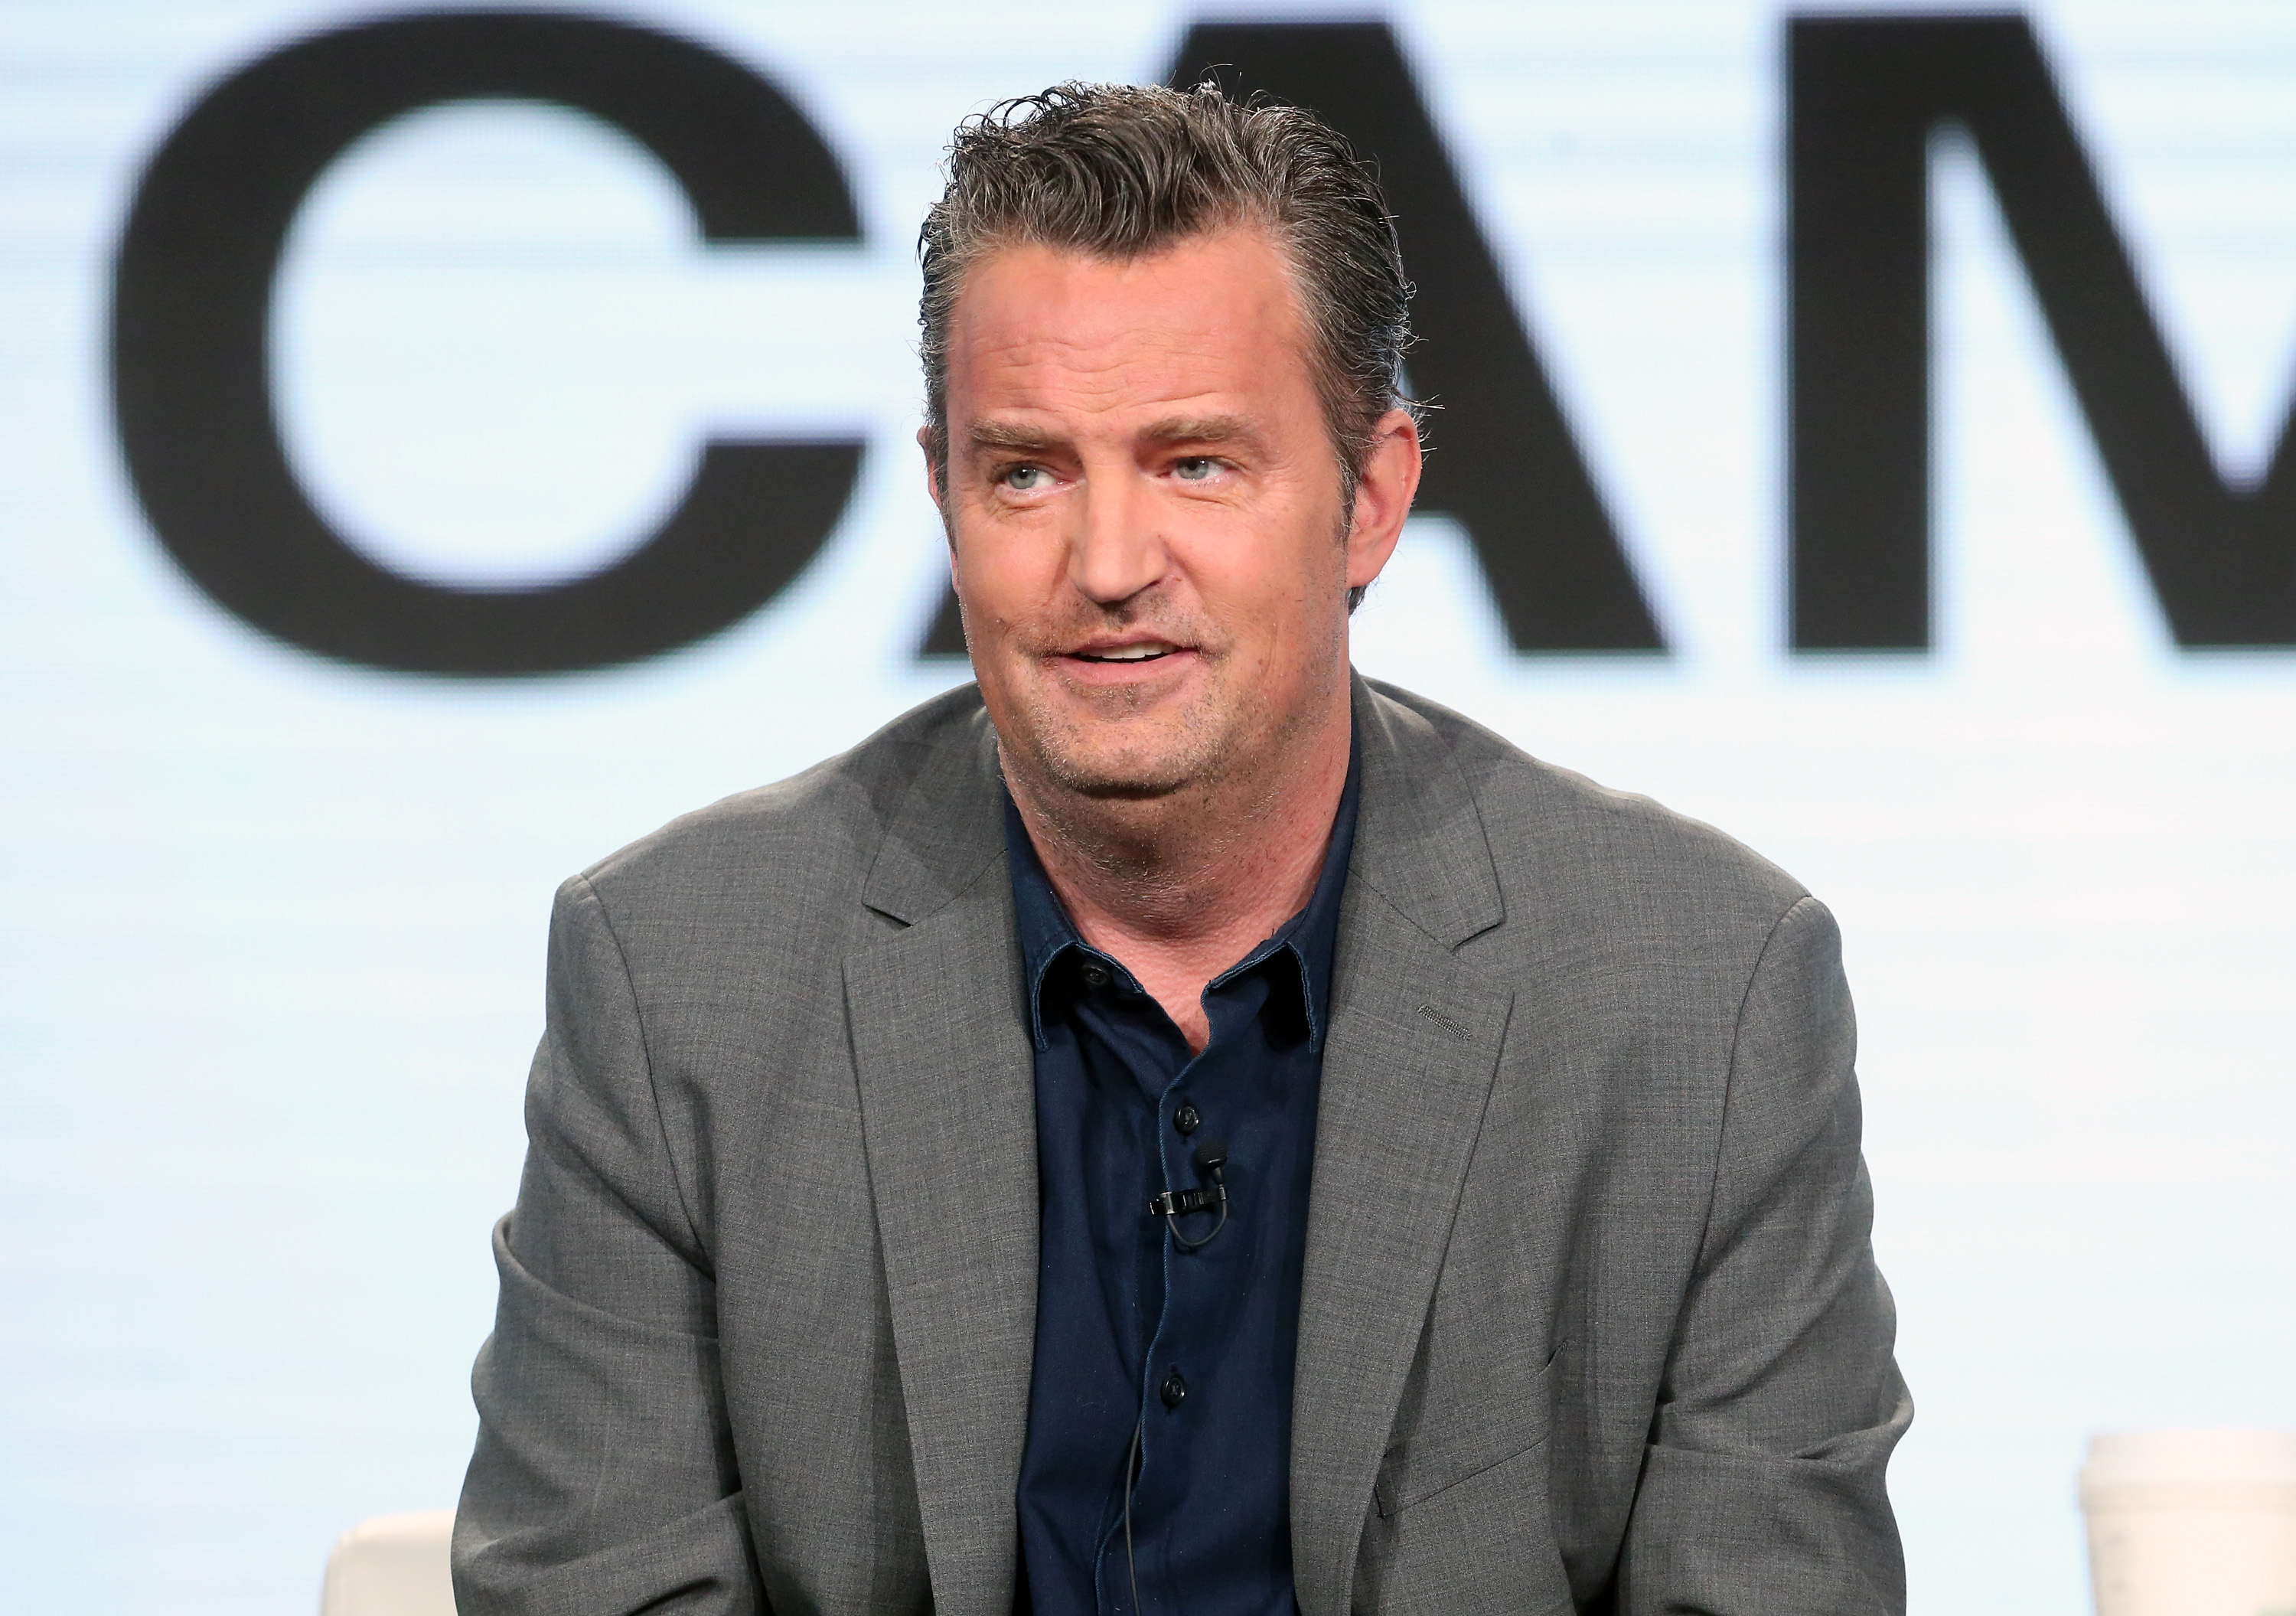 Actor Matthew Perry of the television show 'The Kennedys - After Camelot' speaks onstage during the REELZChannel portion of the 2017 Winter Television Critics Association Press Tour at the Langham Hotel on January 13, 2017 in Pasadena, California